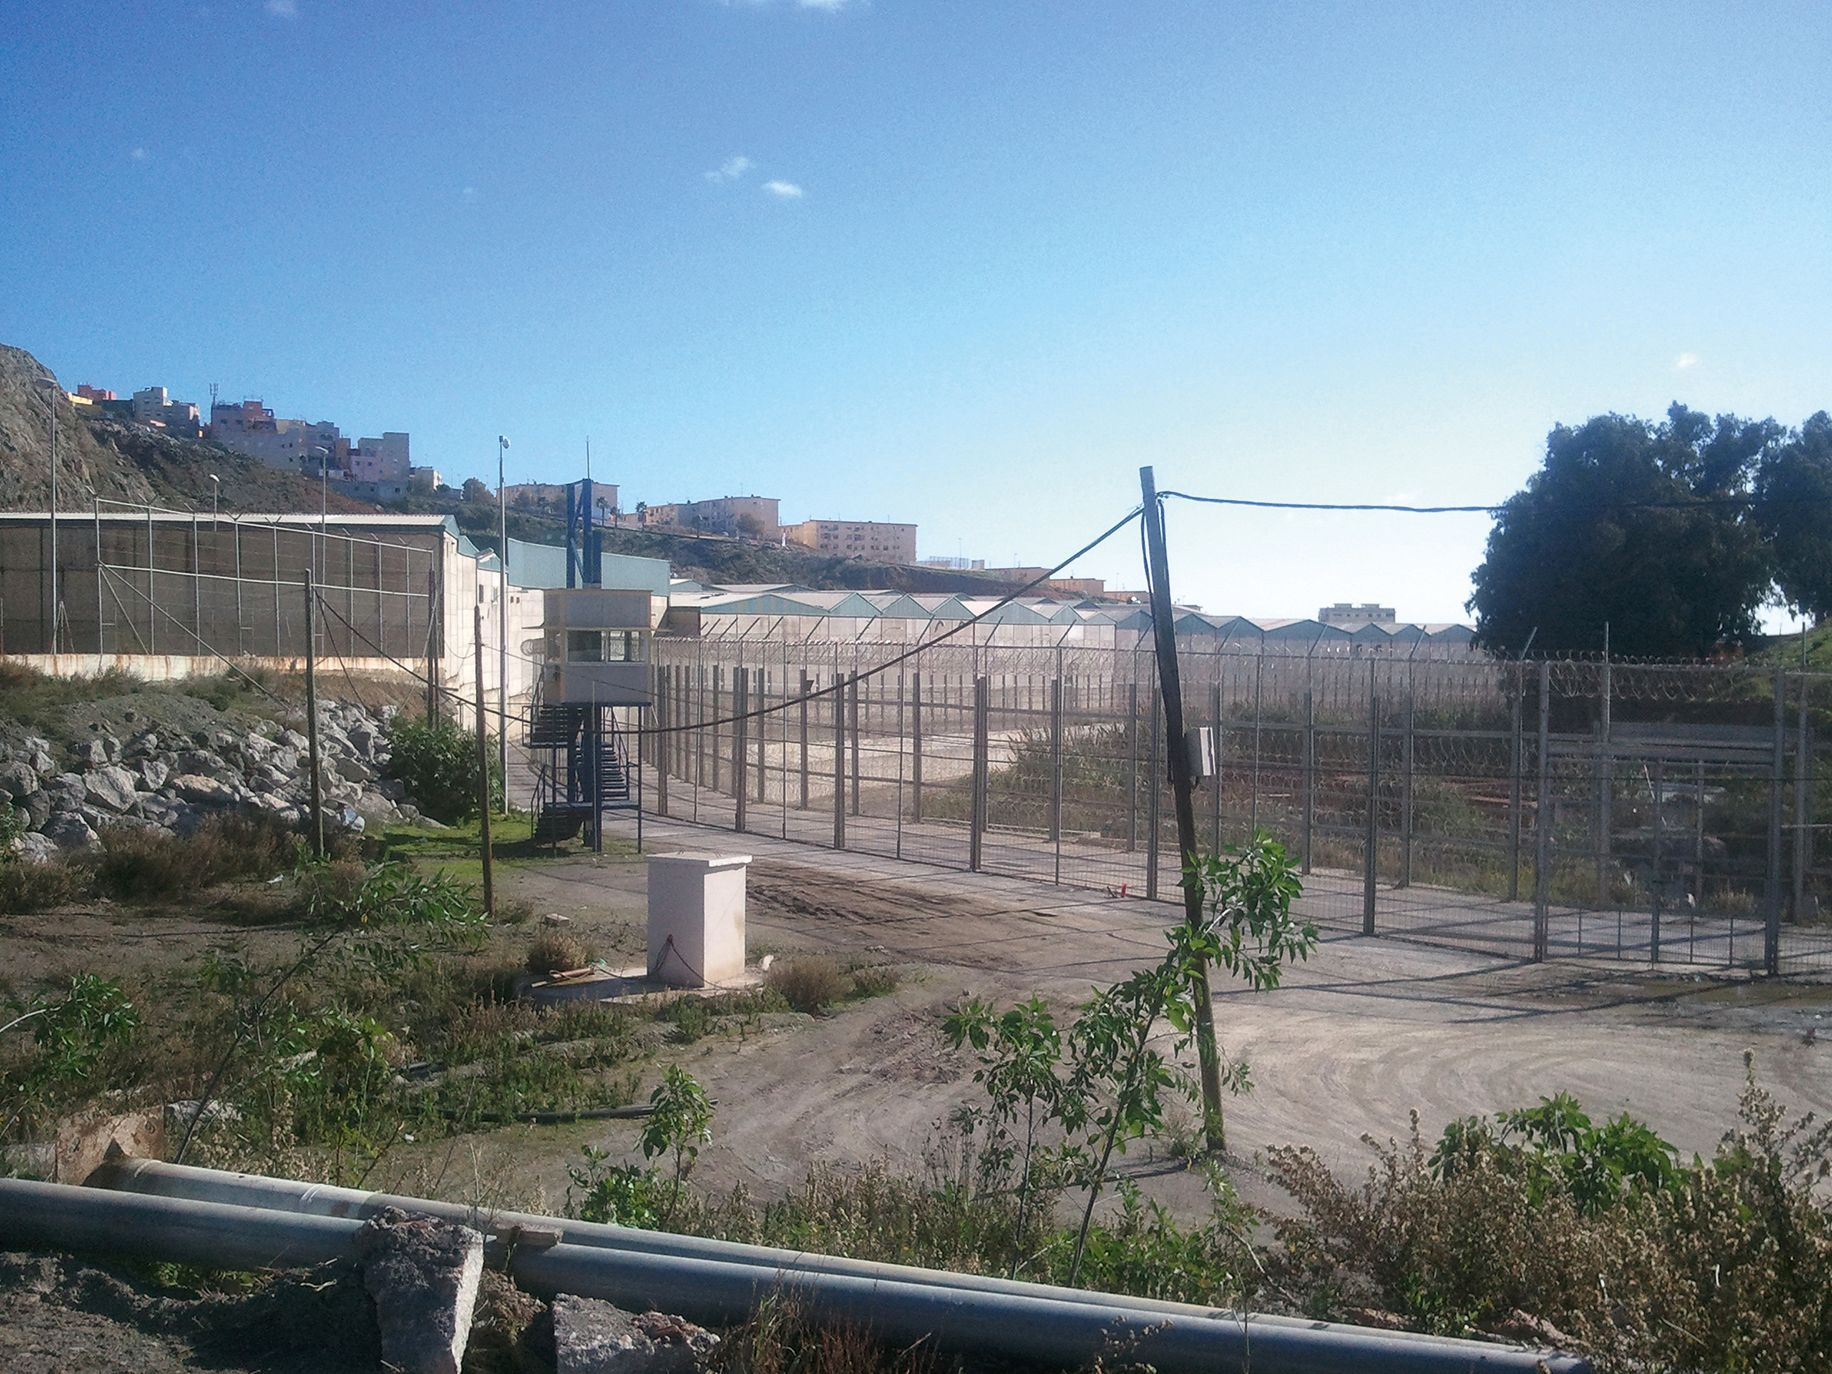 Border fence between Morocco and the Spanish enclave of Ceuta, 2011. Photo: wikimedia.